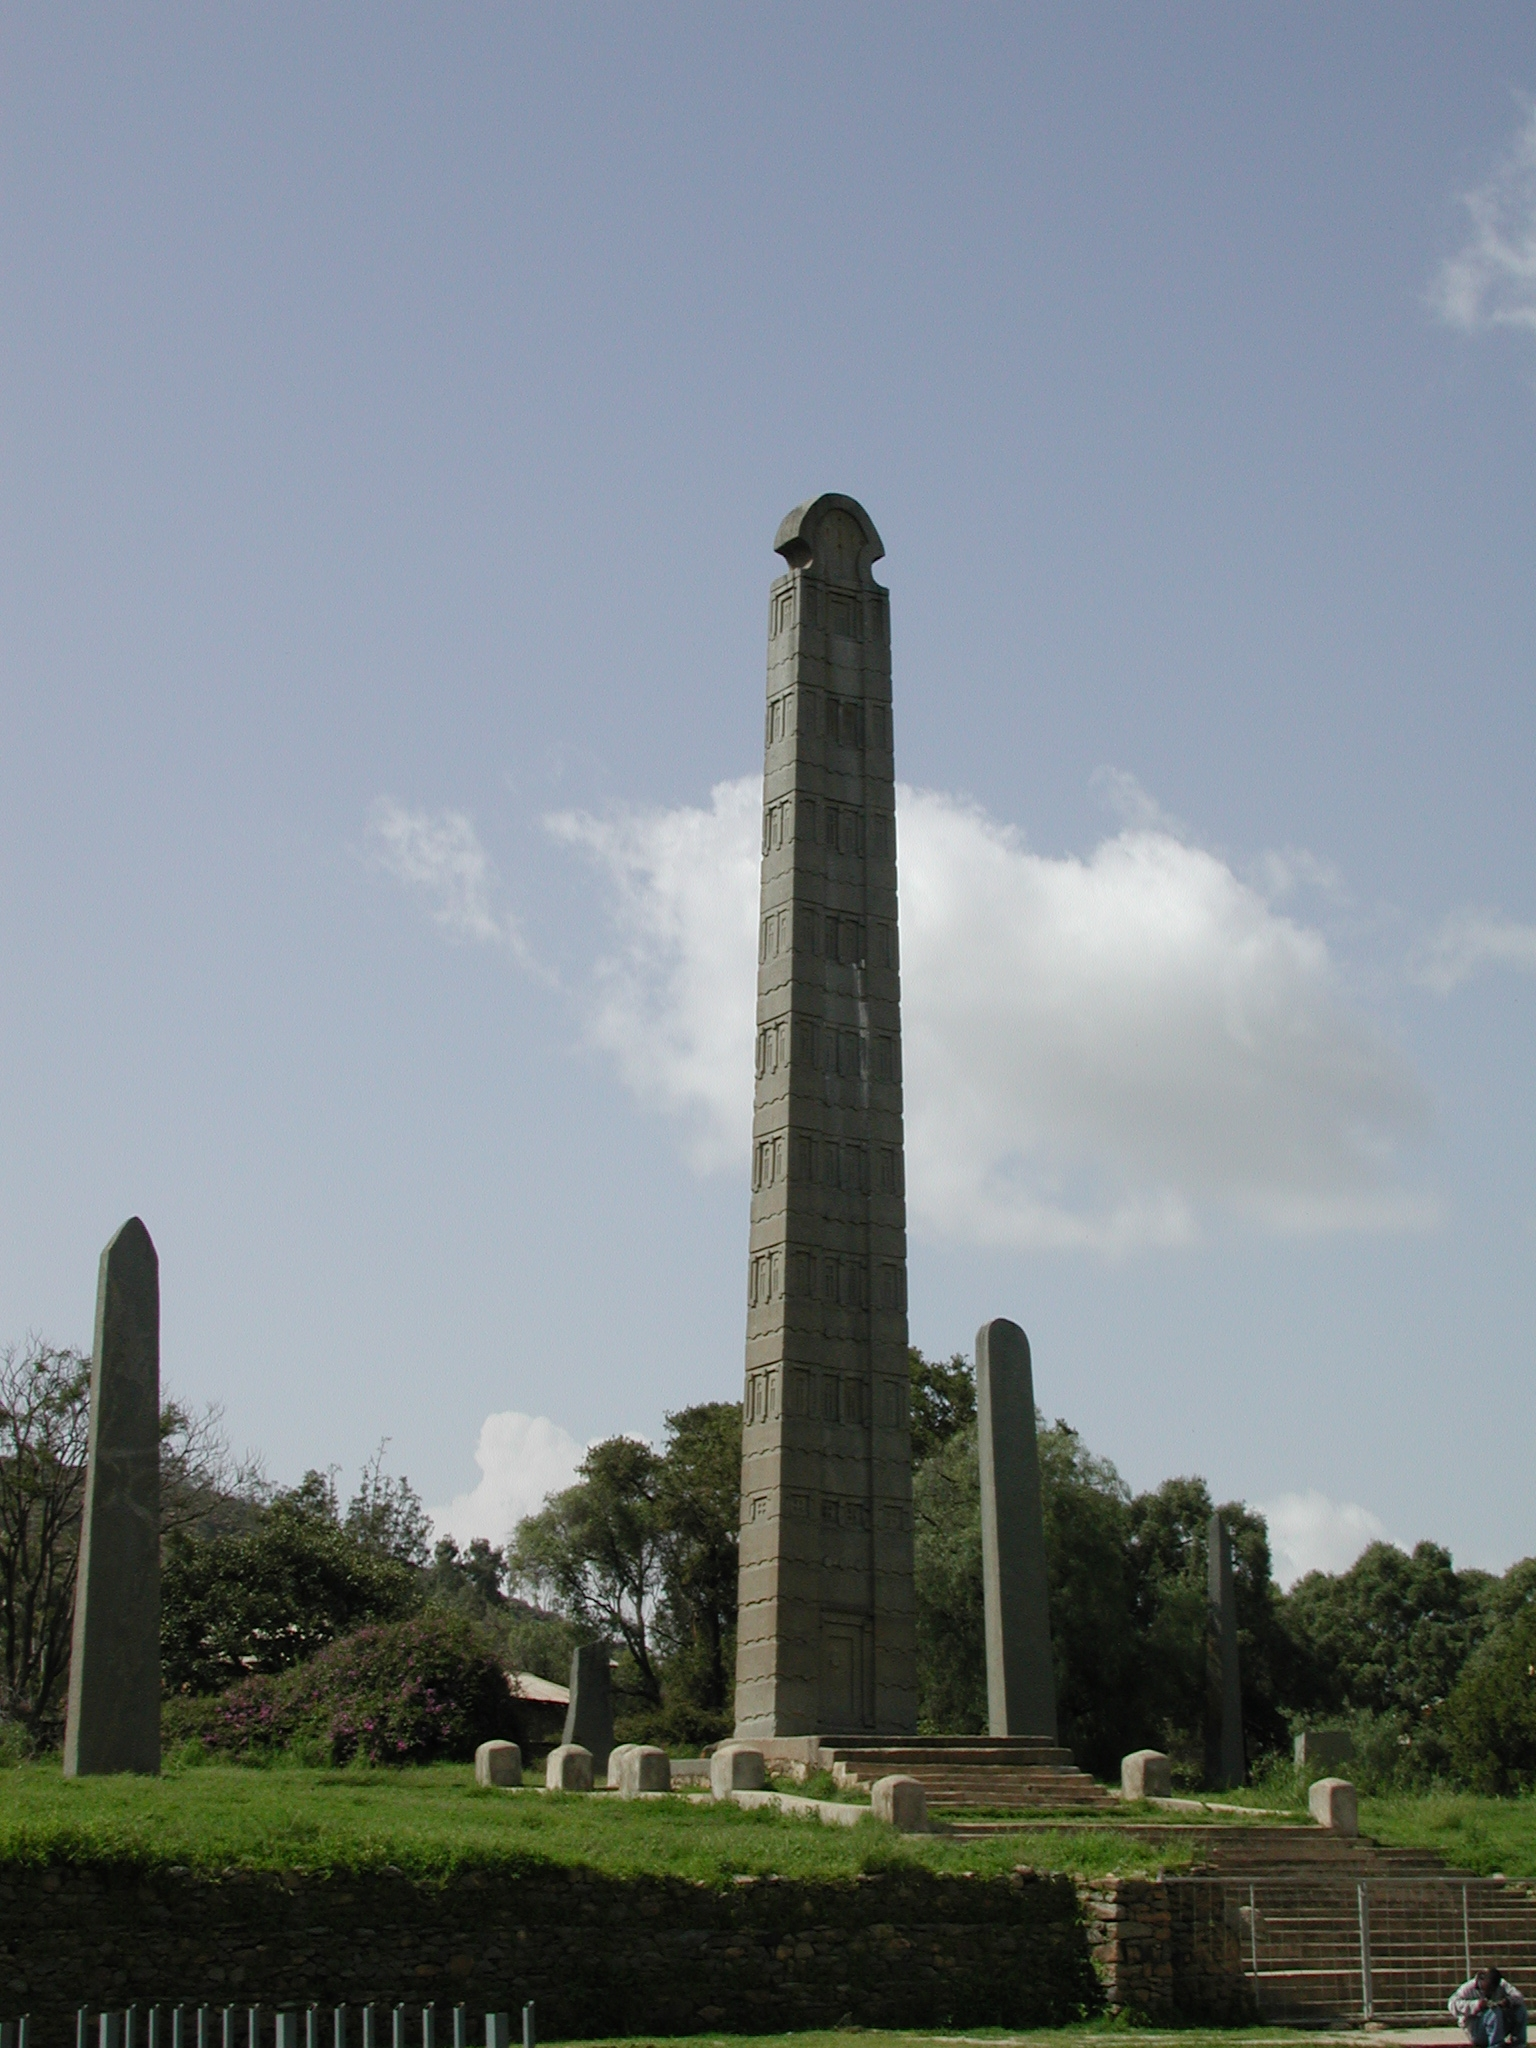 The Axum Obelisks had been looted by Italian fascists in 1937. It was returned to Ethiopia in 2005 and is now a very important landmark. It originated before the 400th century.